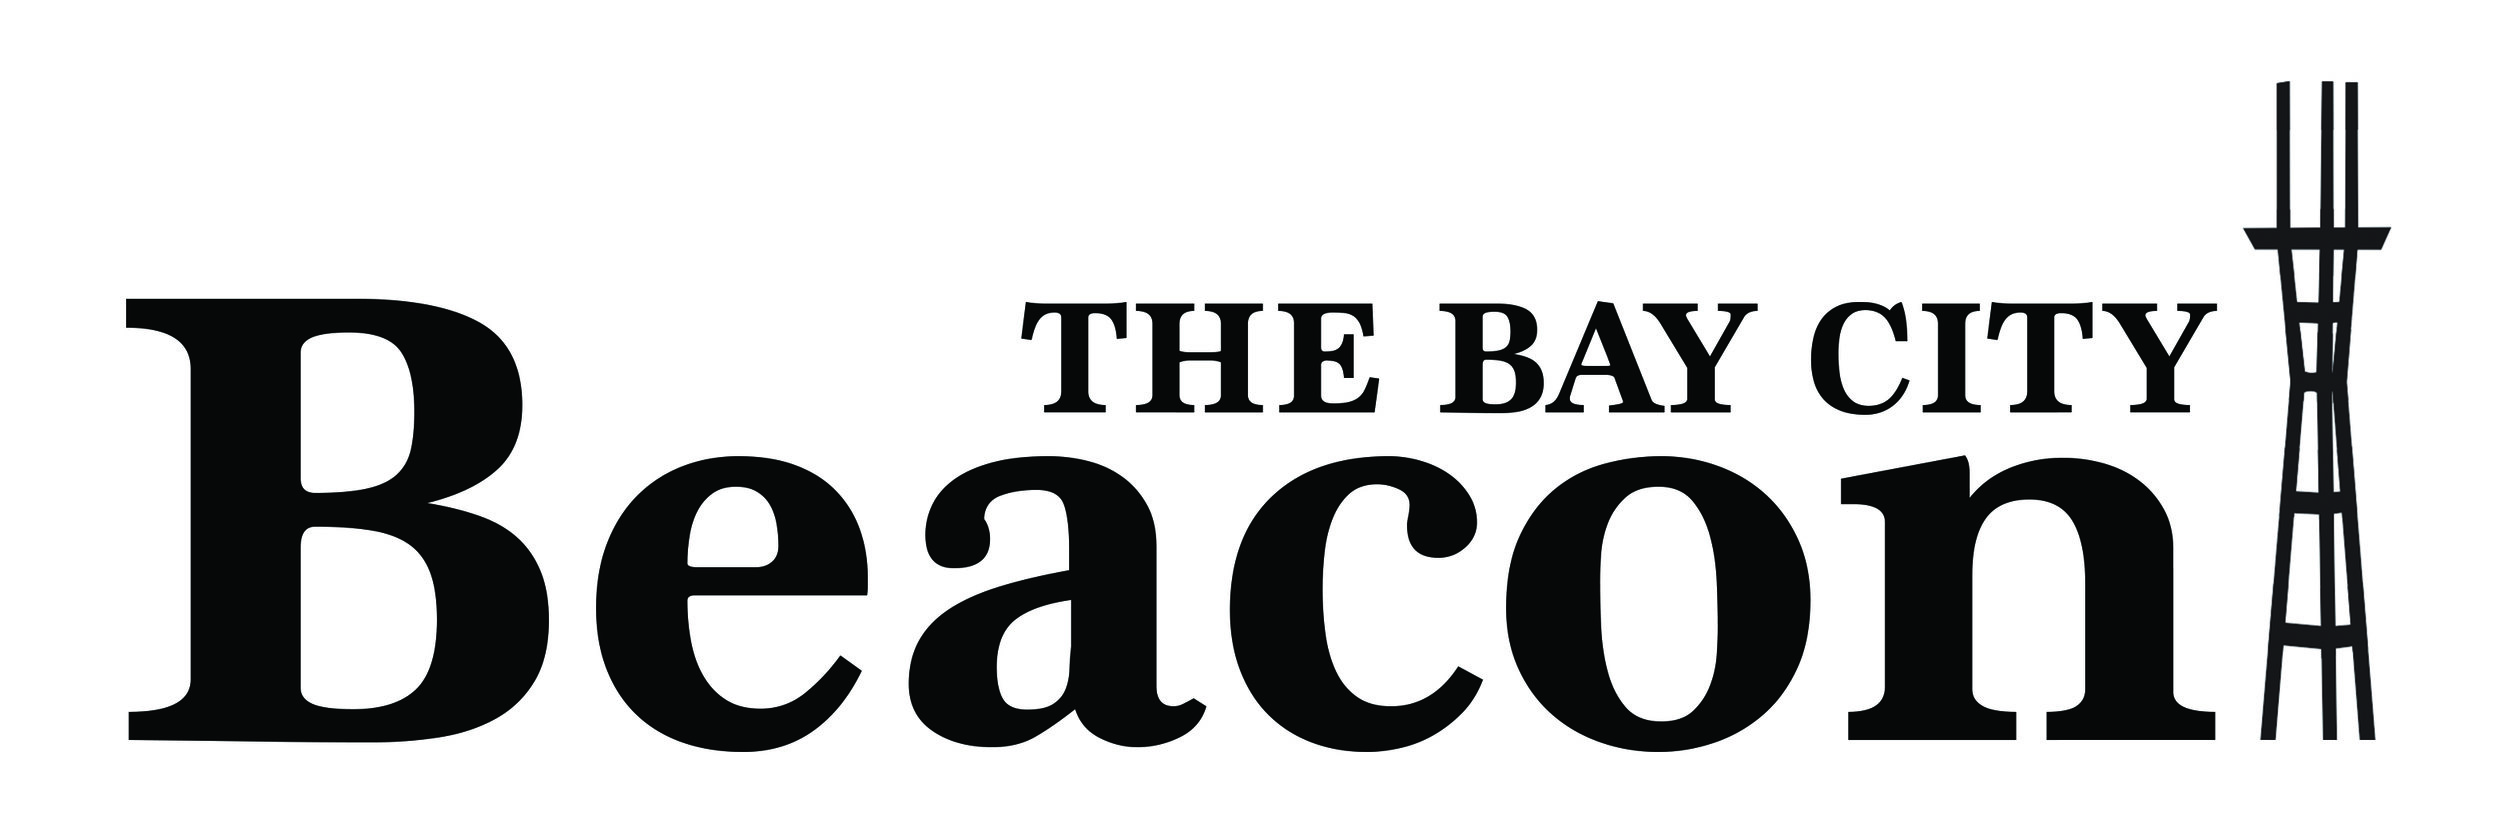 Topical Cannabis: Prop D Taxes a Struggling Industry | The Bay City Beacon | Oct 22, 2018